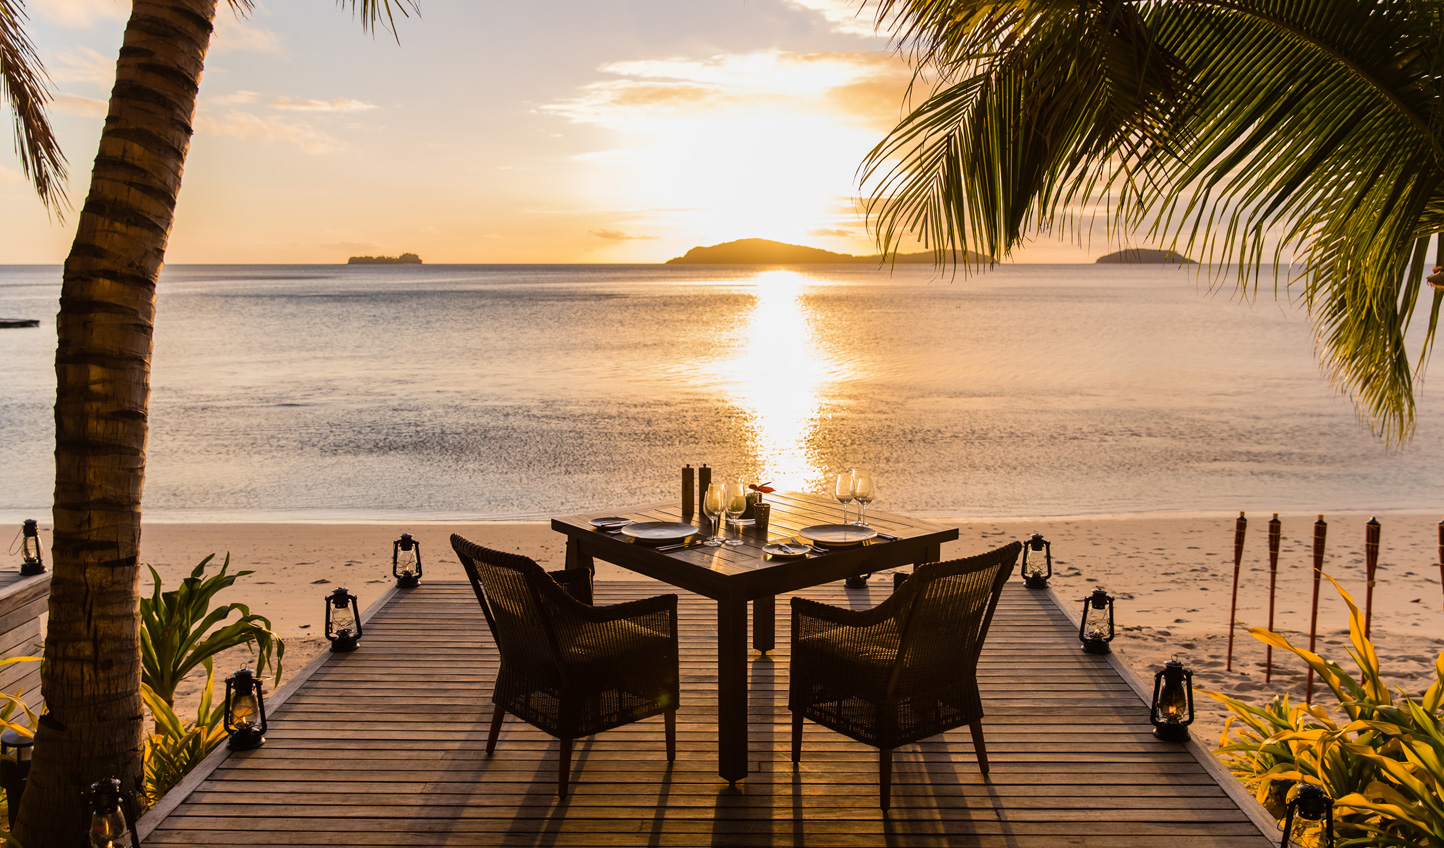 A romantic spot for dinner as the sun sets and the waves lap the shore